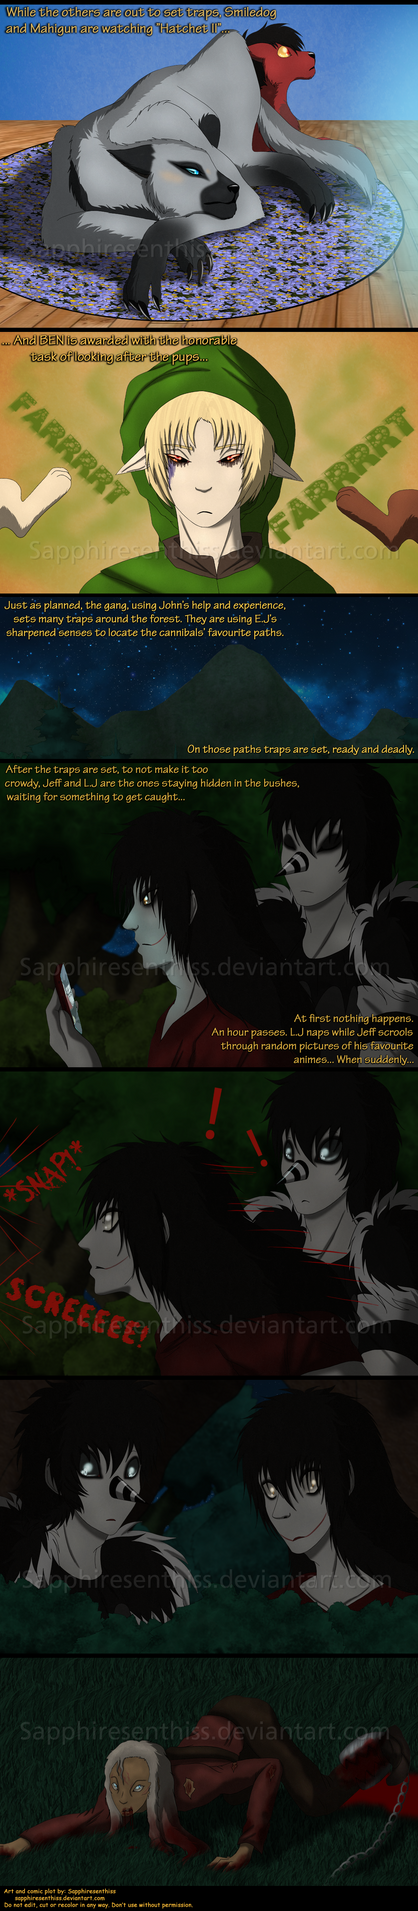 Adventures With Jeff The Killer - PAGE 195 by Sapphiresenthiss